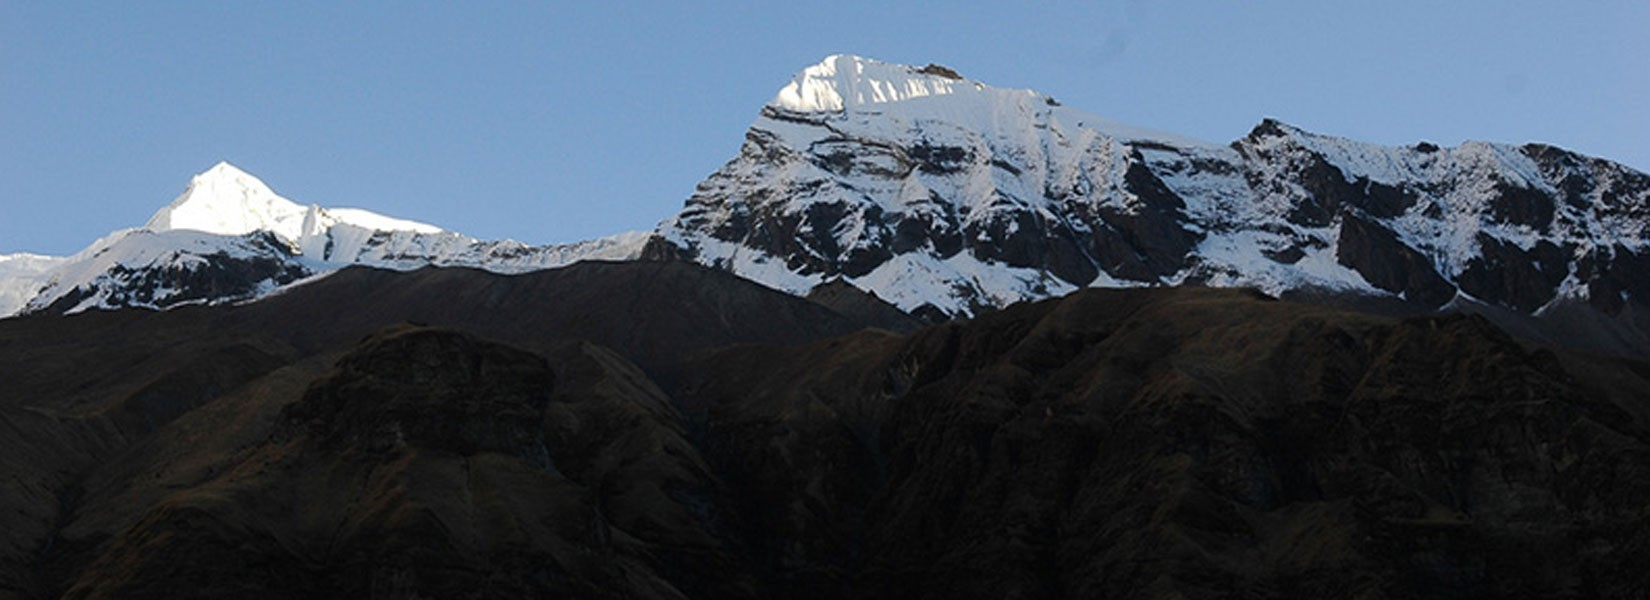 Tent Peak in Annapurna